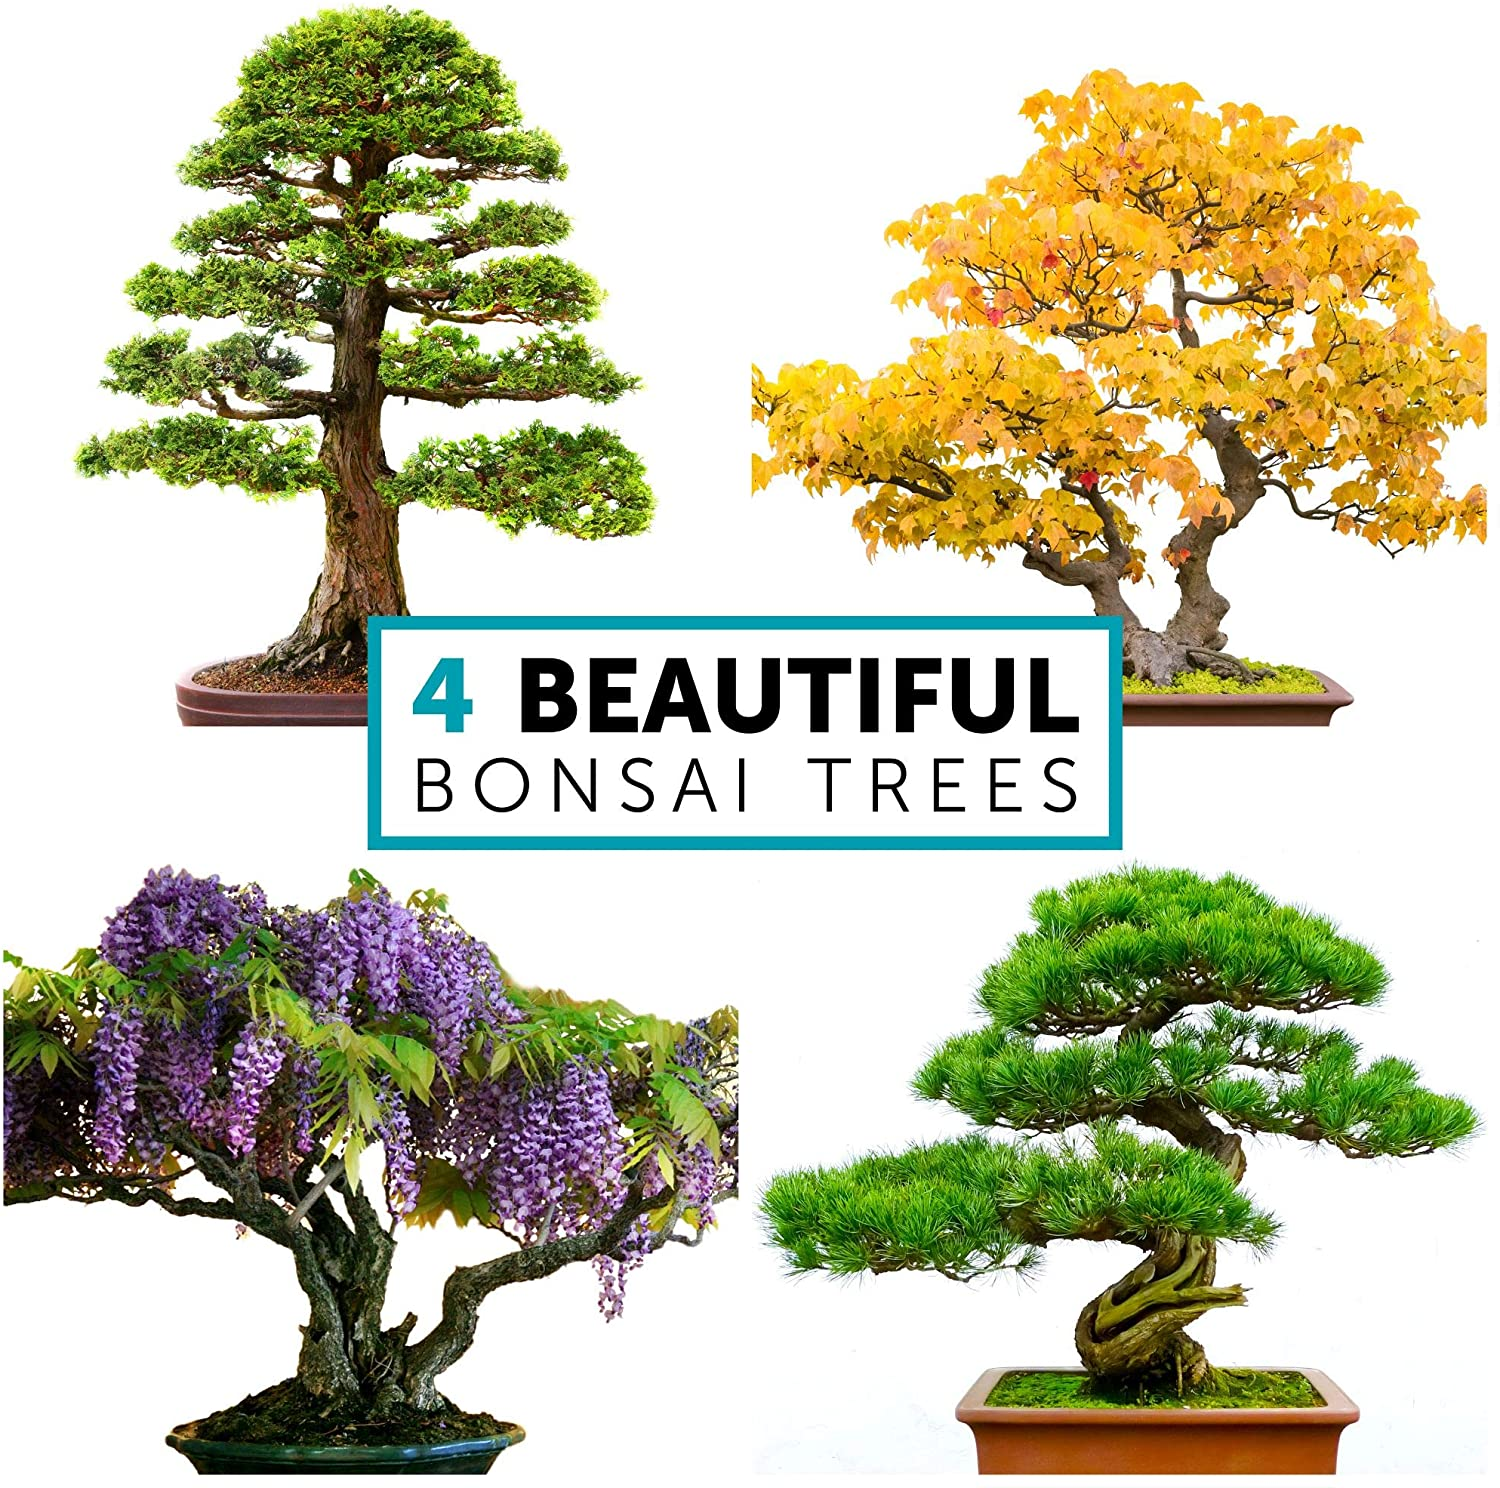 Bonsai Tree Kit Includes Pots Seeds Soil Pellets Markers Instructions Booklet Diy Bonsai Growing Kit Beginner Friendly Happy Healthy Caregiver